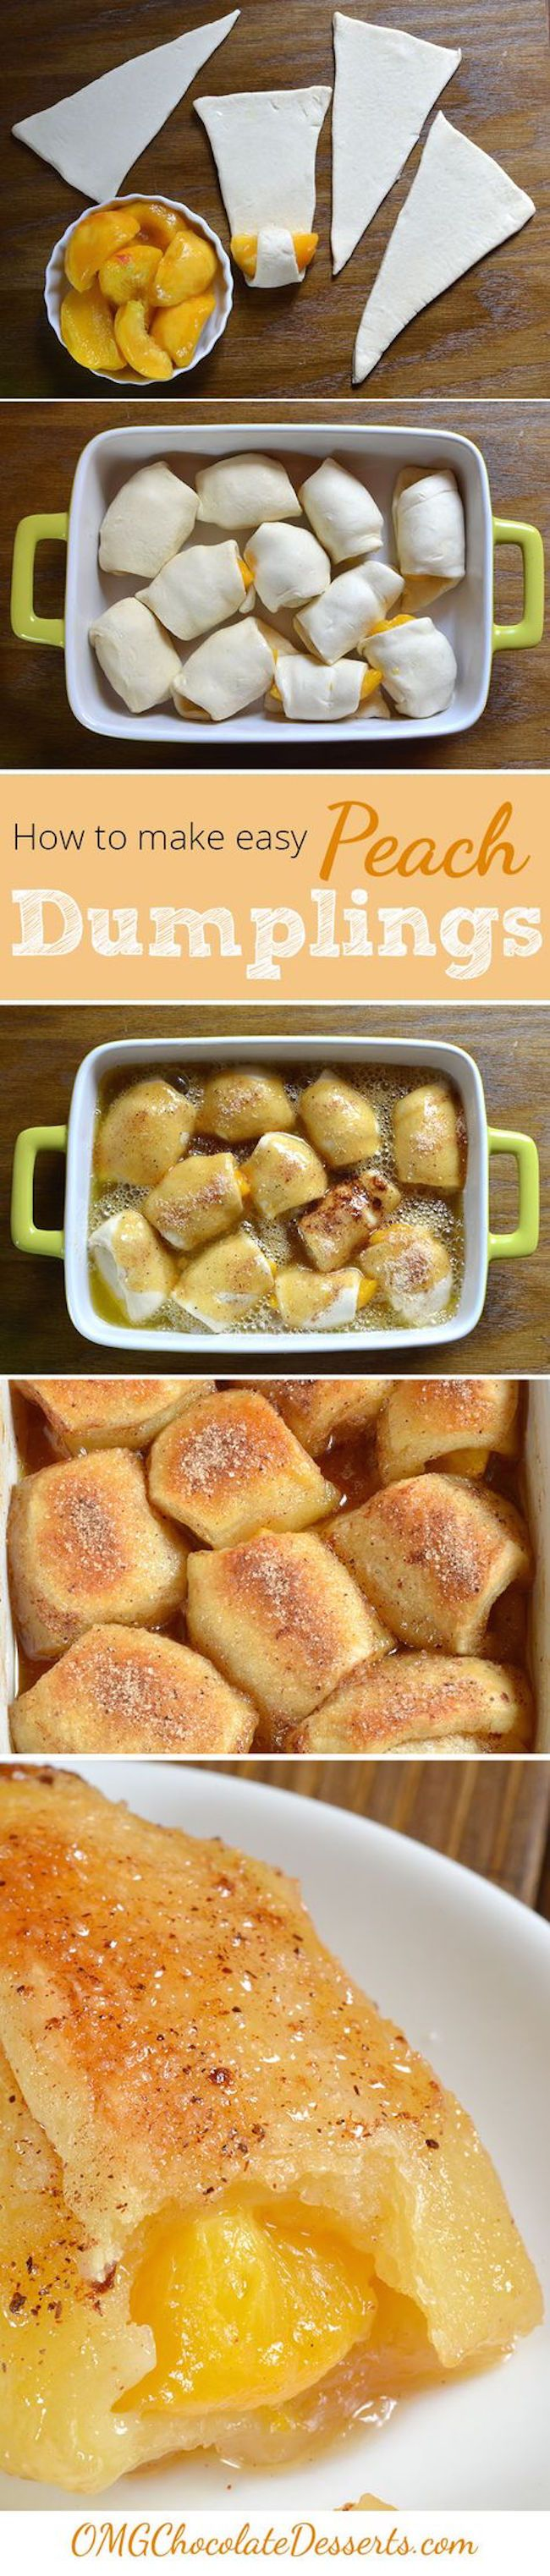 The 11 Best Crescent Roll Recipes - pizza ring, pinwheels, crescent roll pot pies, and cheese stuffed crescent rolls.